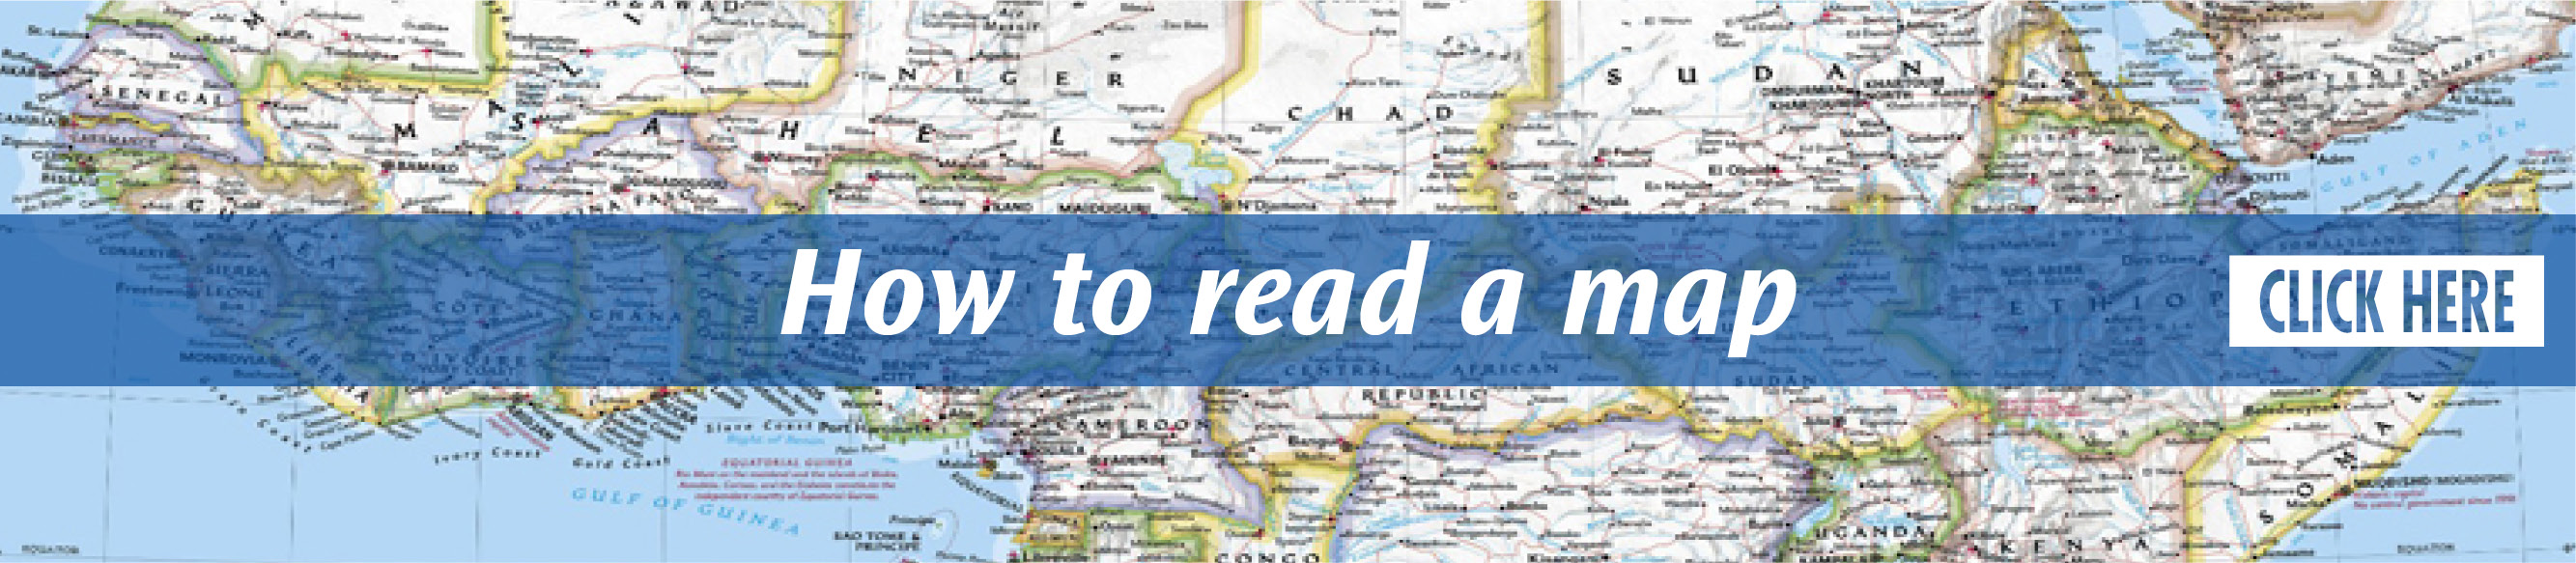 how-to-read-a-map